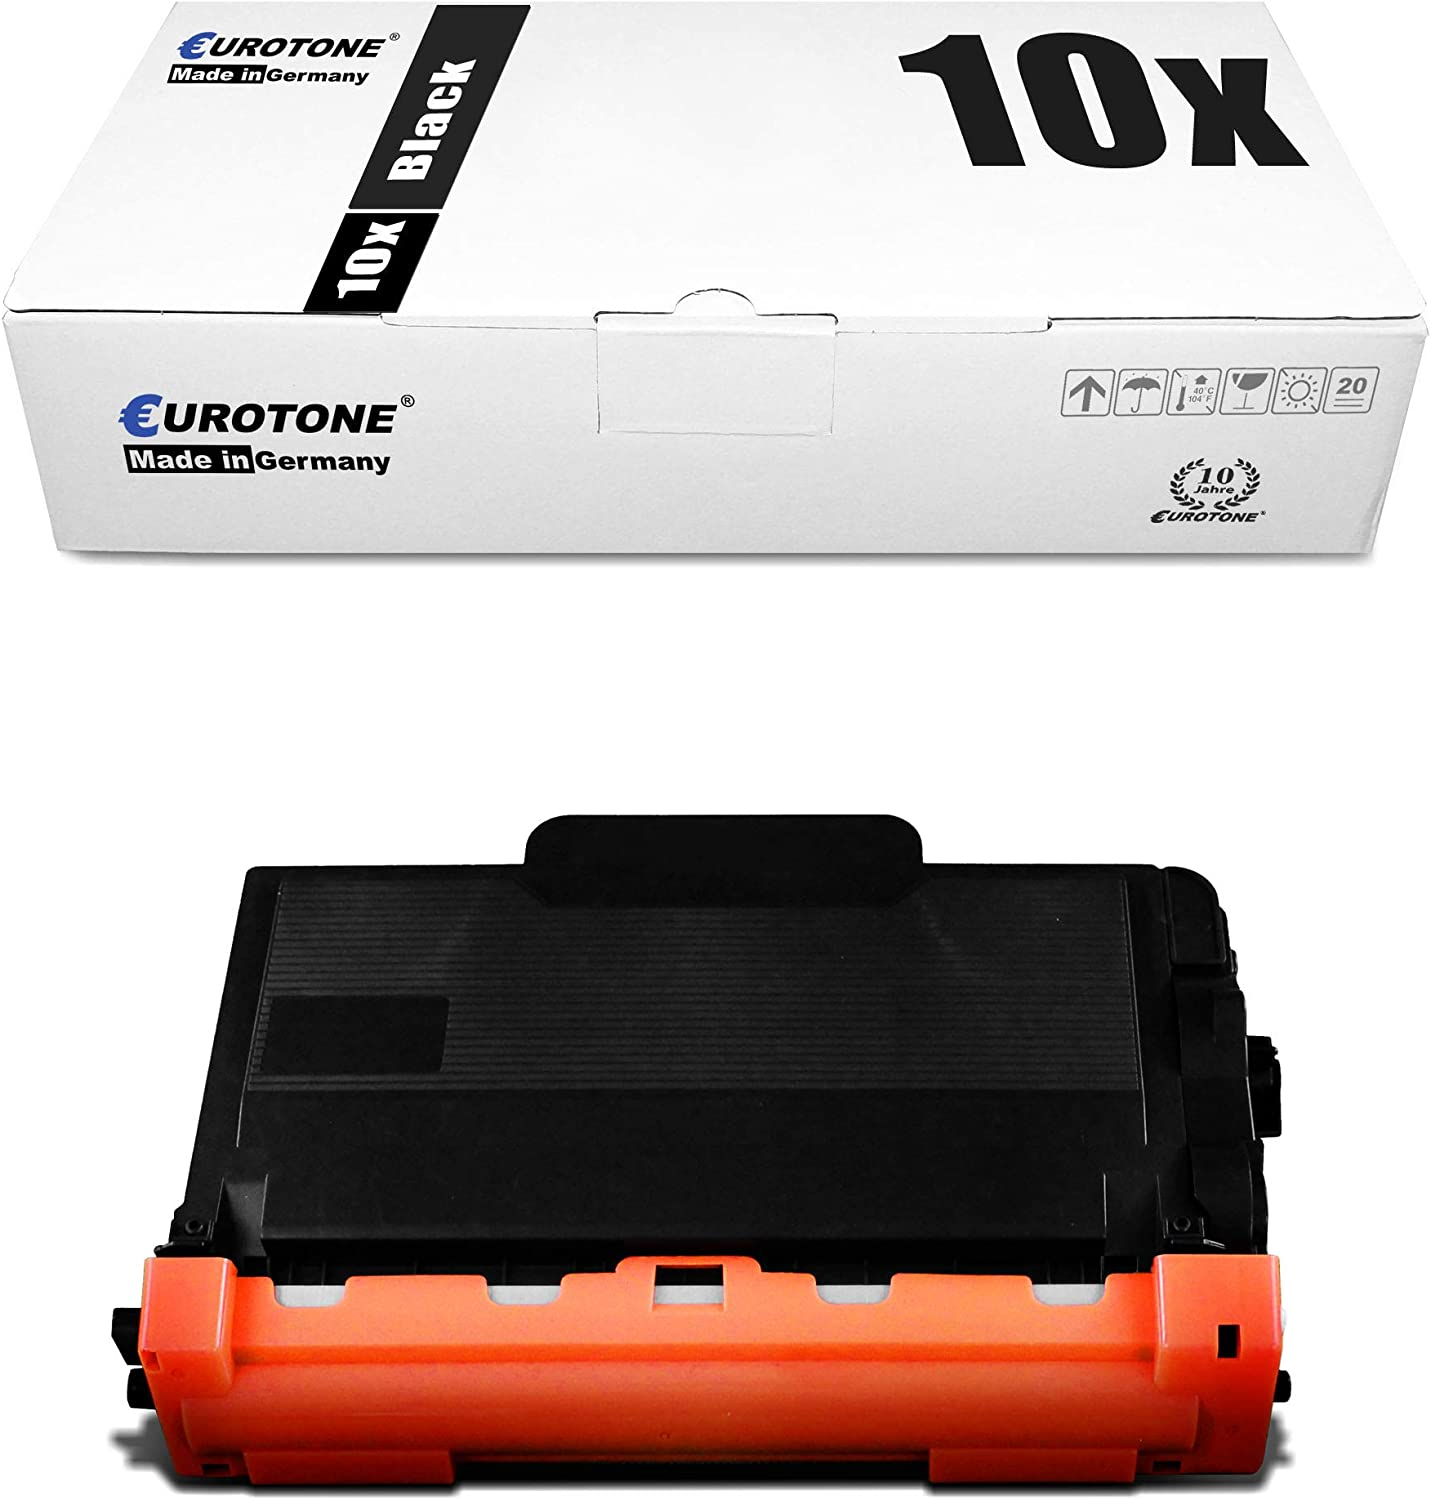 10x Eurotone Toner for Brother MFC-L 5700 5750 6800 6900 DWT DW DN Replaces TN3480